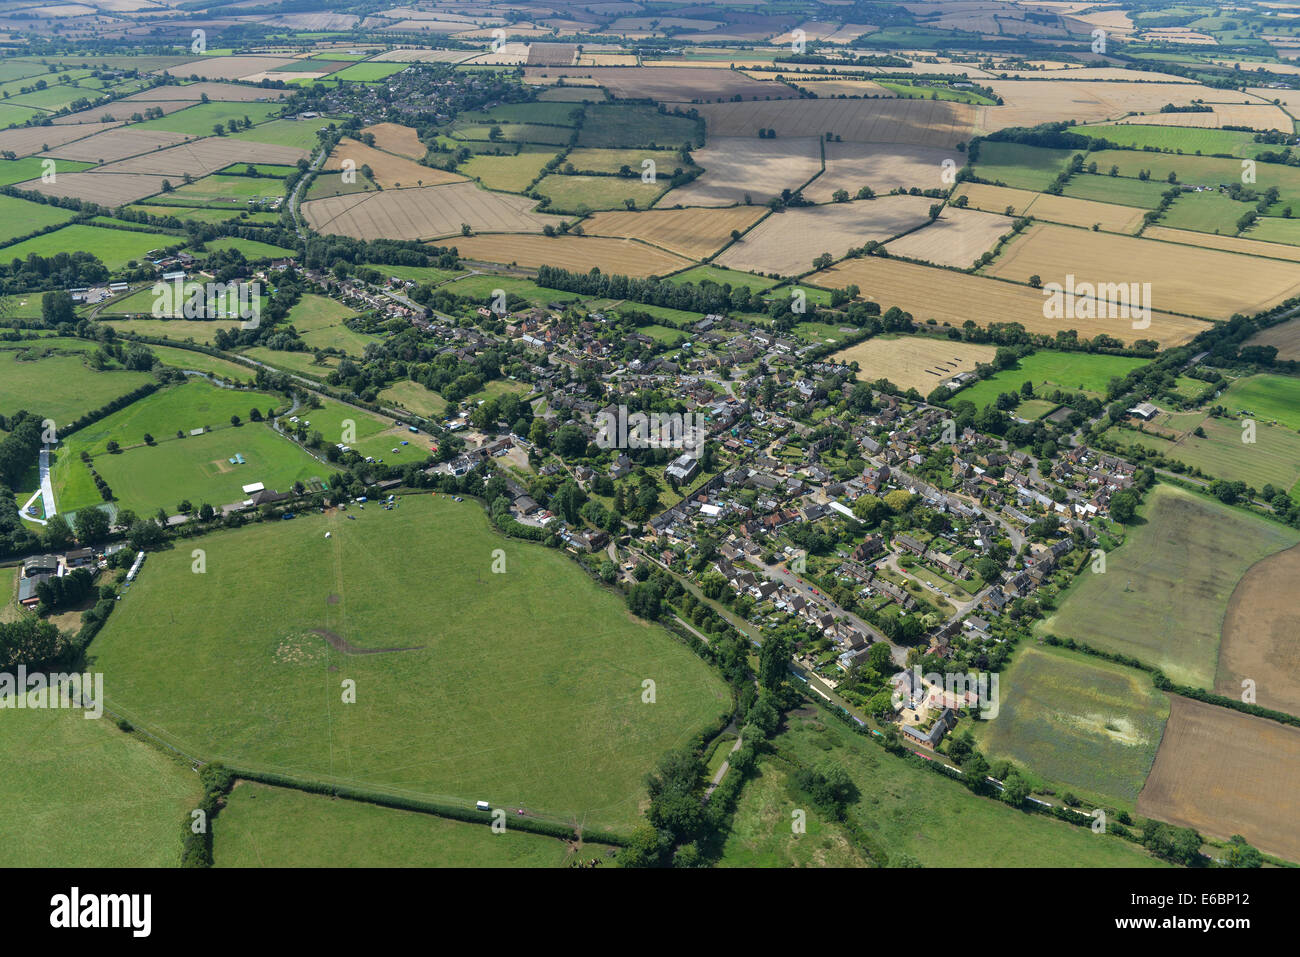 An aerial view of the Oxfordshire village of Cropredy and surrounding countryside. - Stock Image